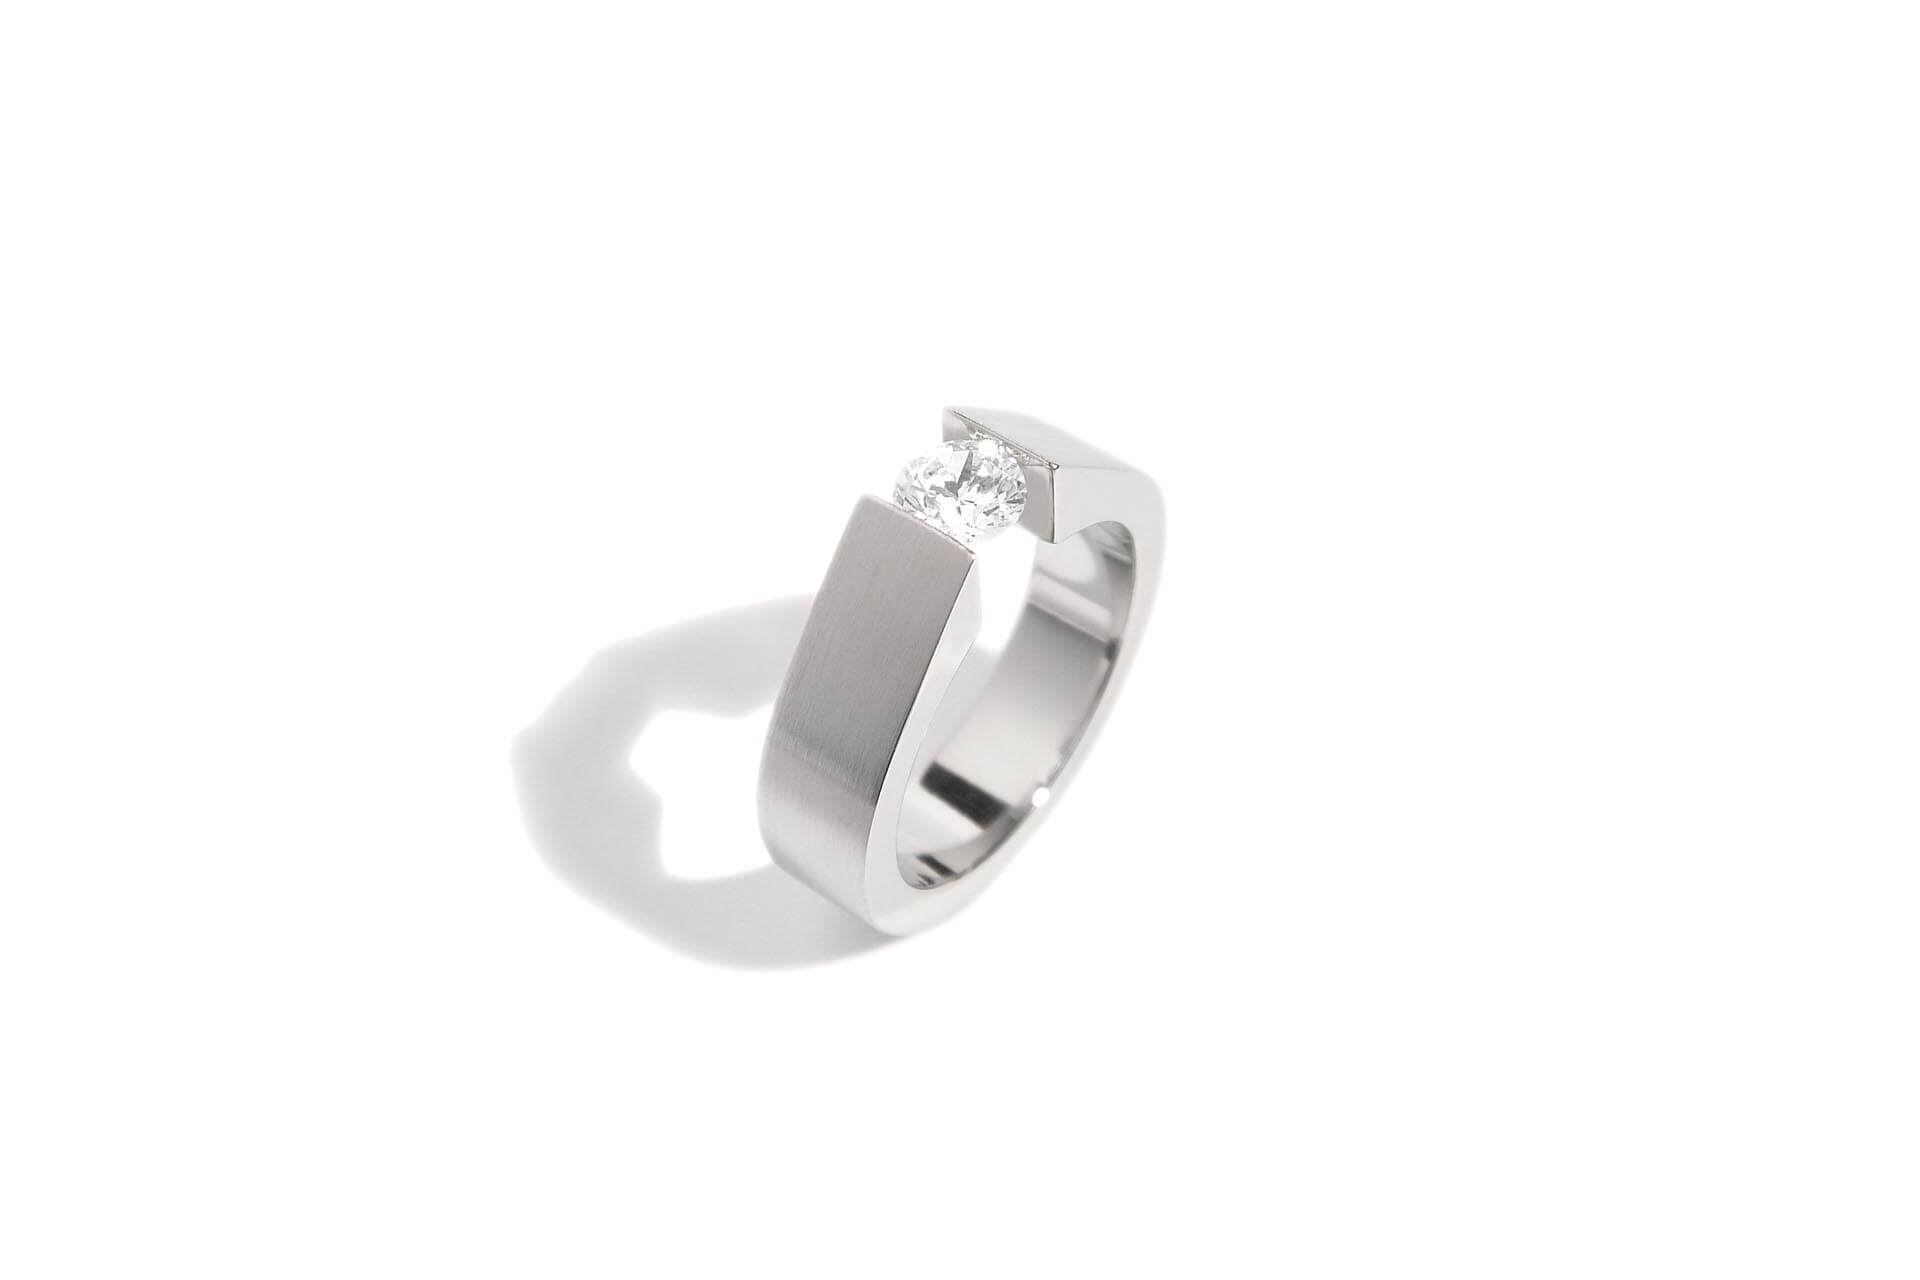 steel and diamond tension ring ER 9 004